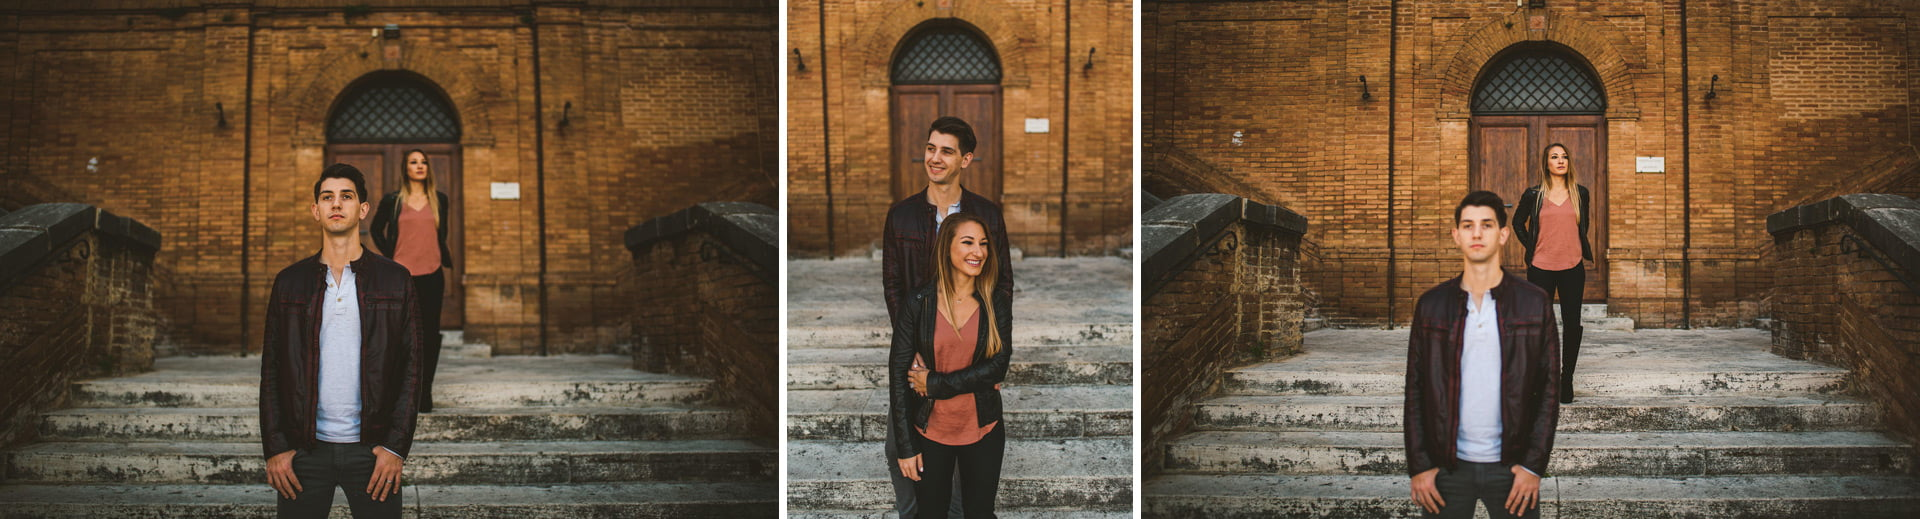 , Engagement and Portrait Couple in Siena, Tuscany, Federico Pannacci, Federico Pannacci